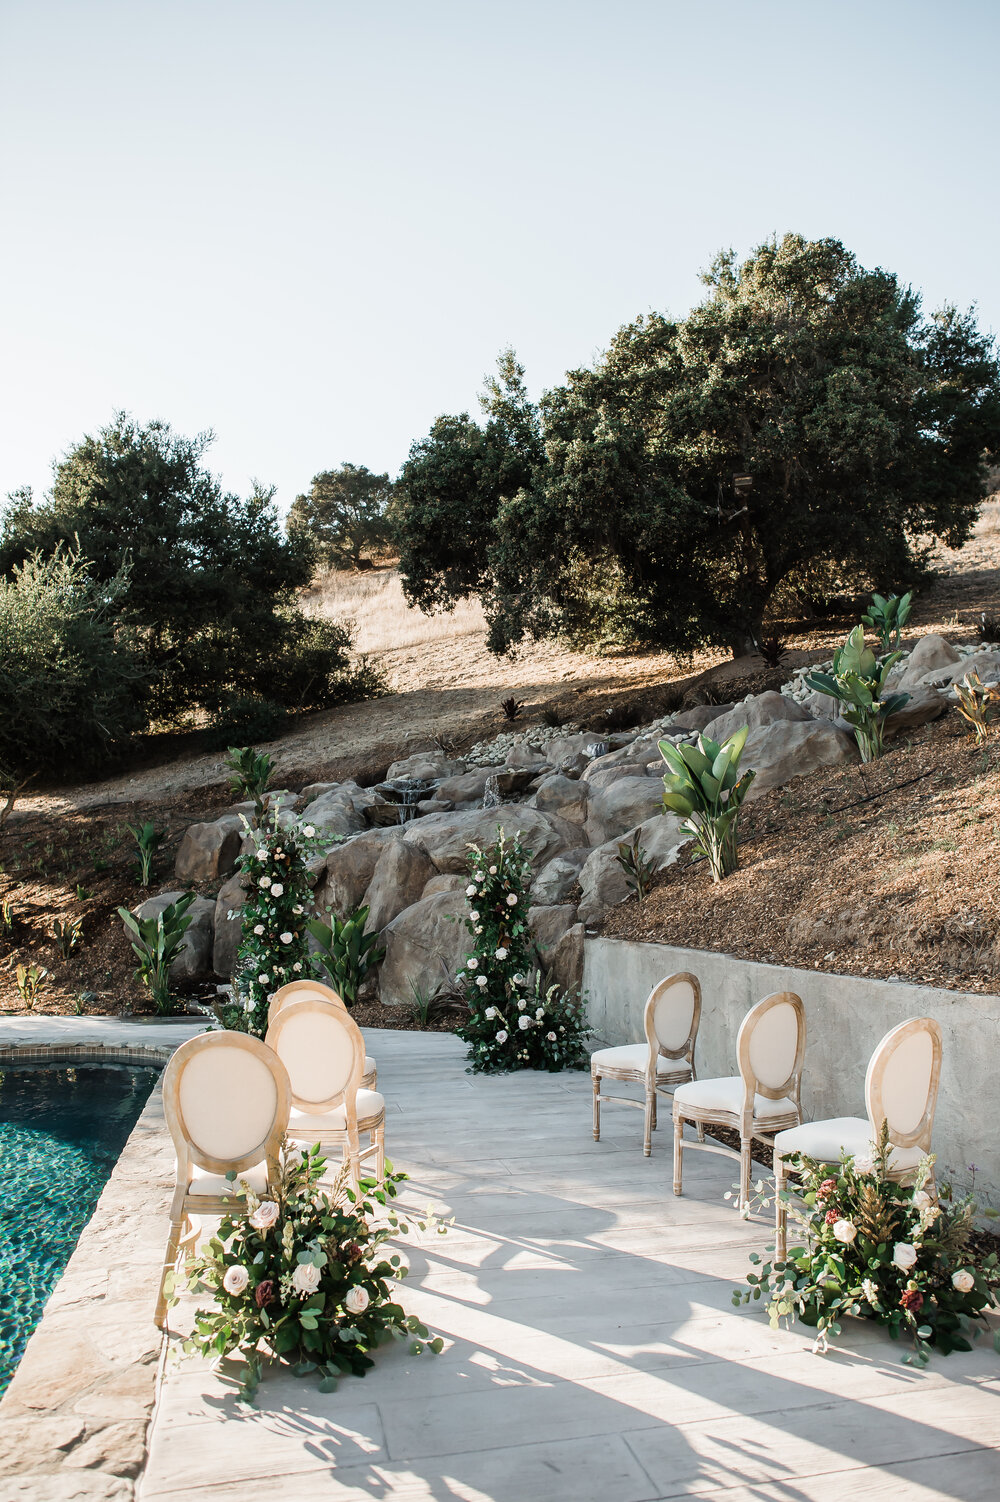 www.santabarbarawedding.com | The Tavern at Zaca Creek | Events by Fran | Michelle Ramirez Photography | Tangled Lotus | Amigo Party Rentals | The Ceremony Staged Set Up